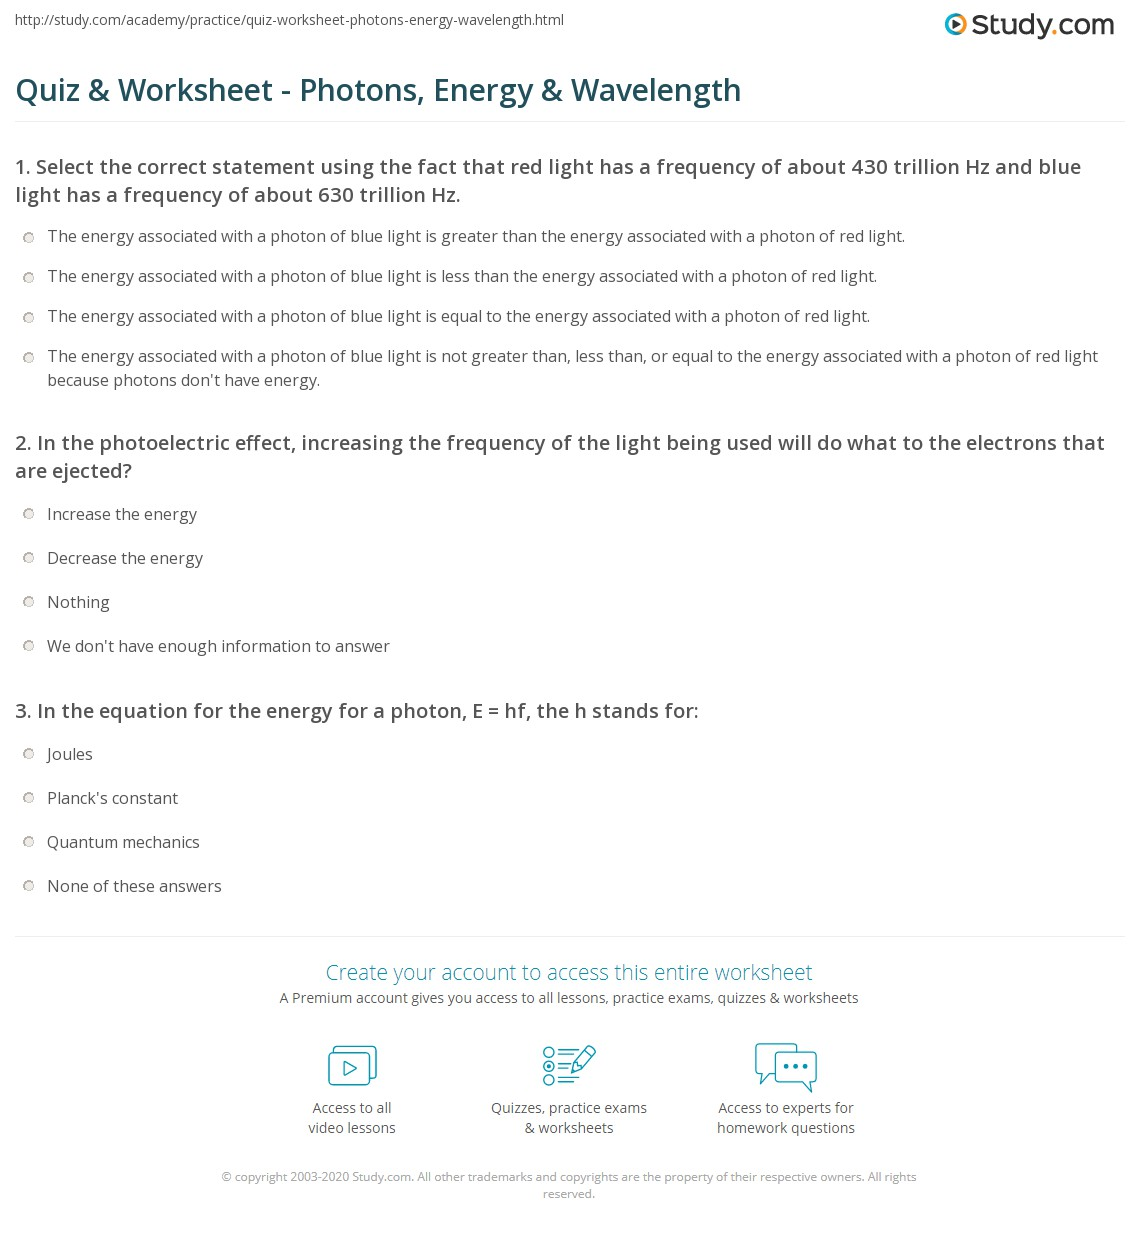 Quiz & Worksheet - Photons, Energy & Wavelength | Study com